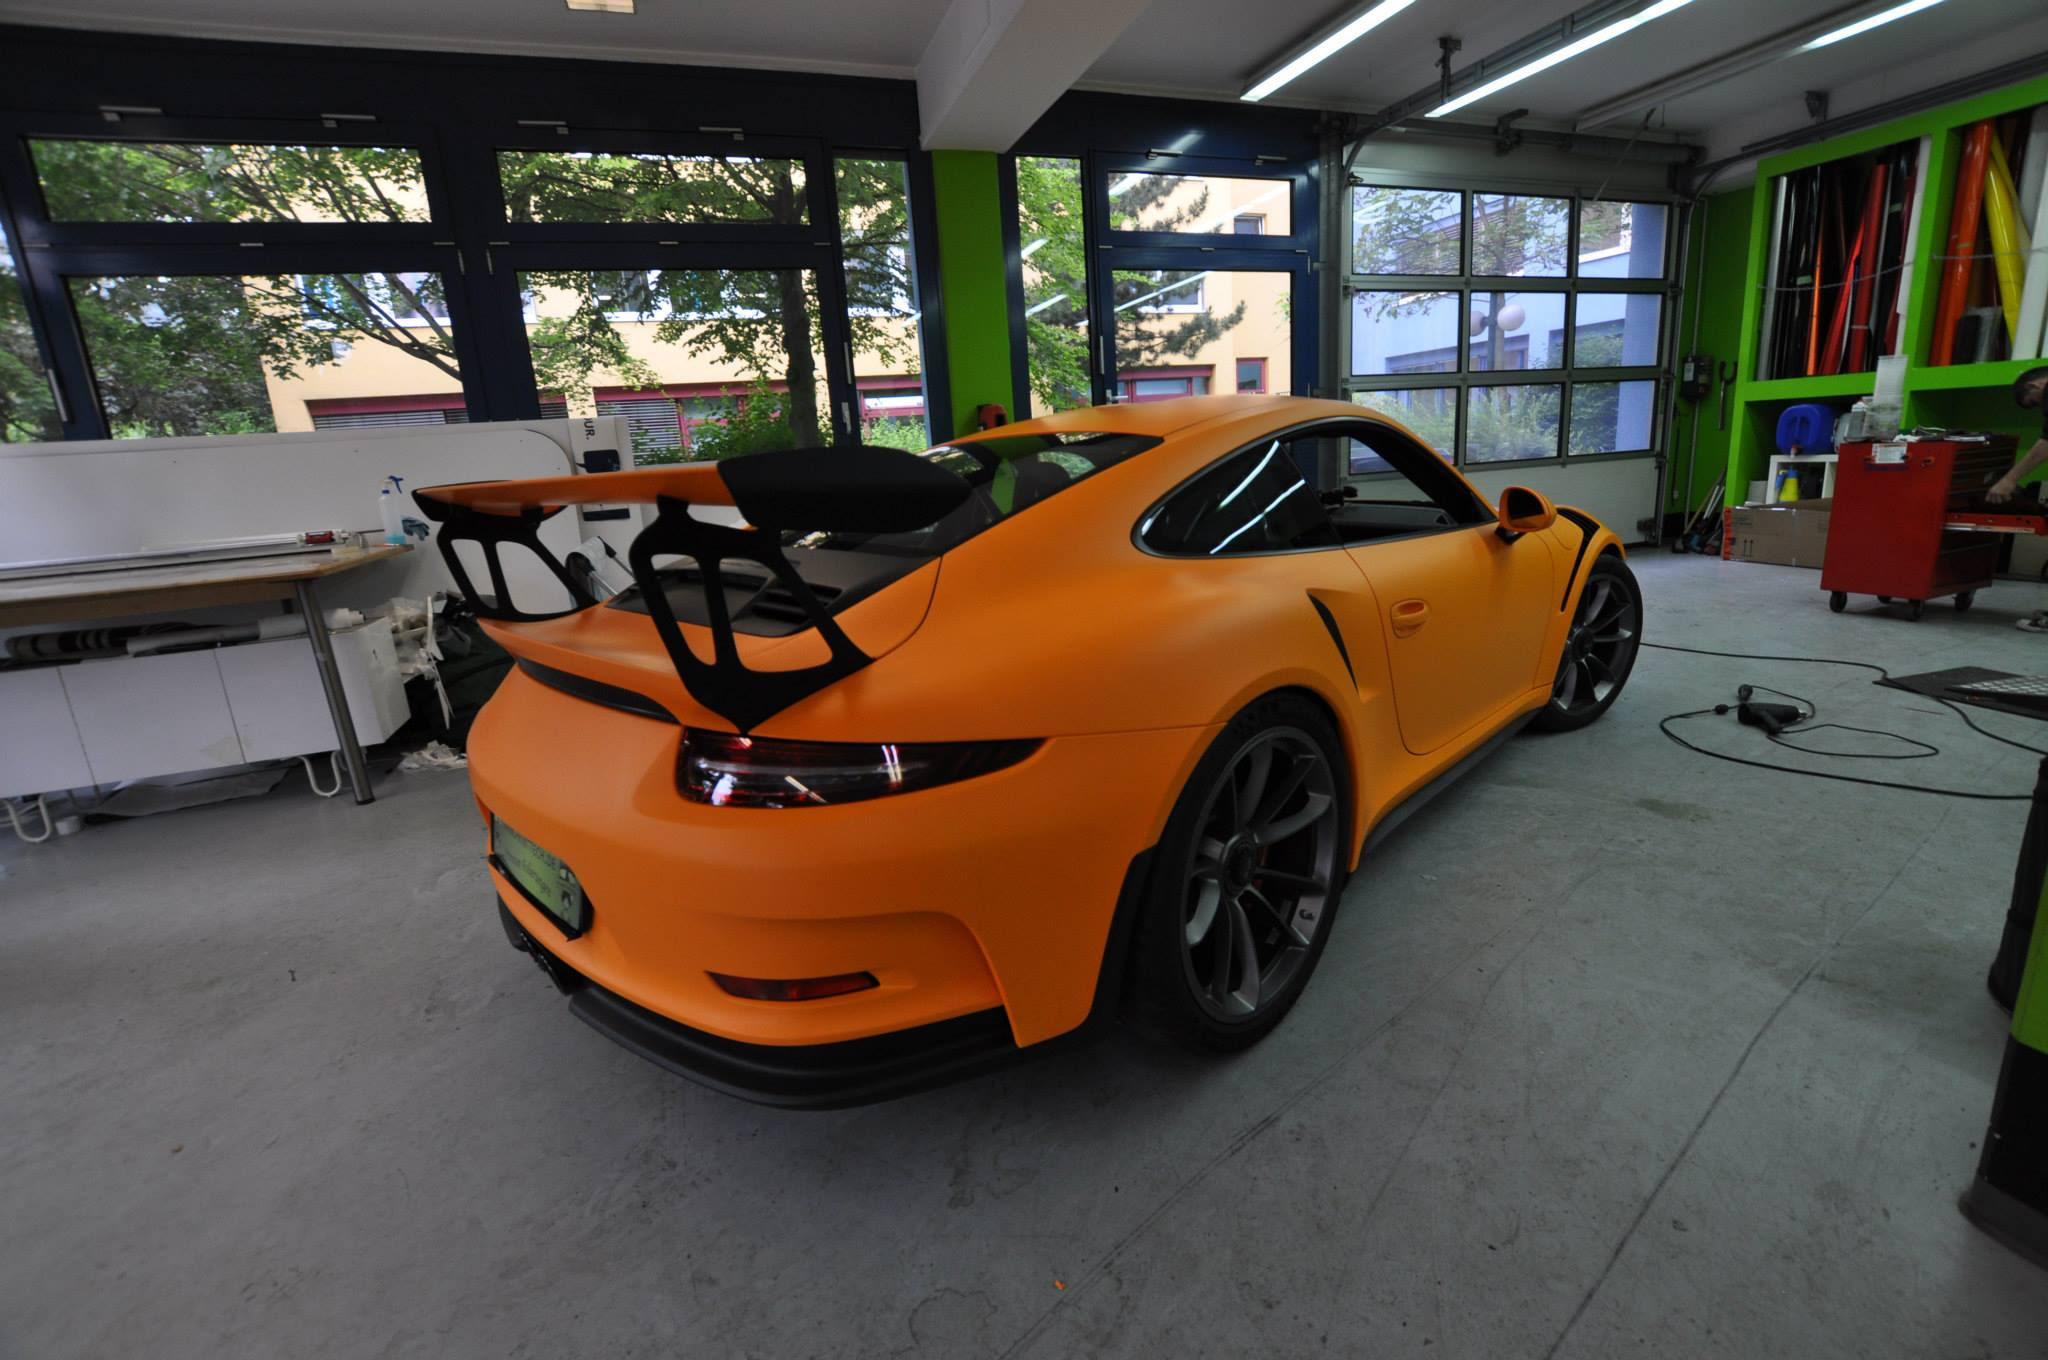 2016 Porsche 911 Gt3 Rs Gets Retro Look With Racing Orange